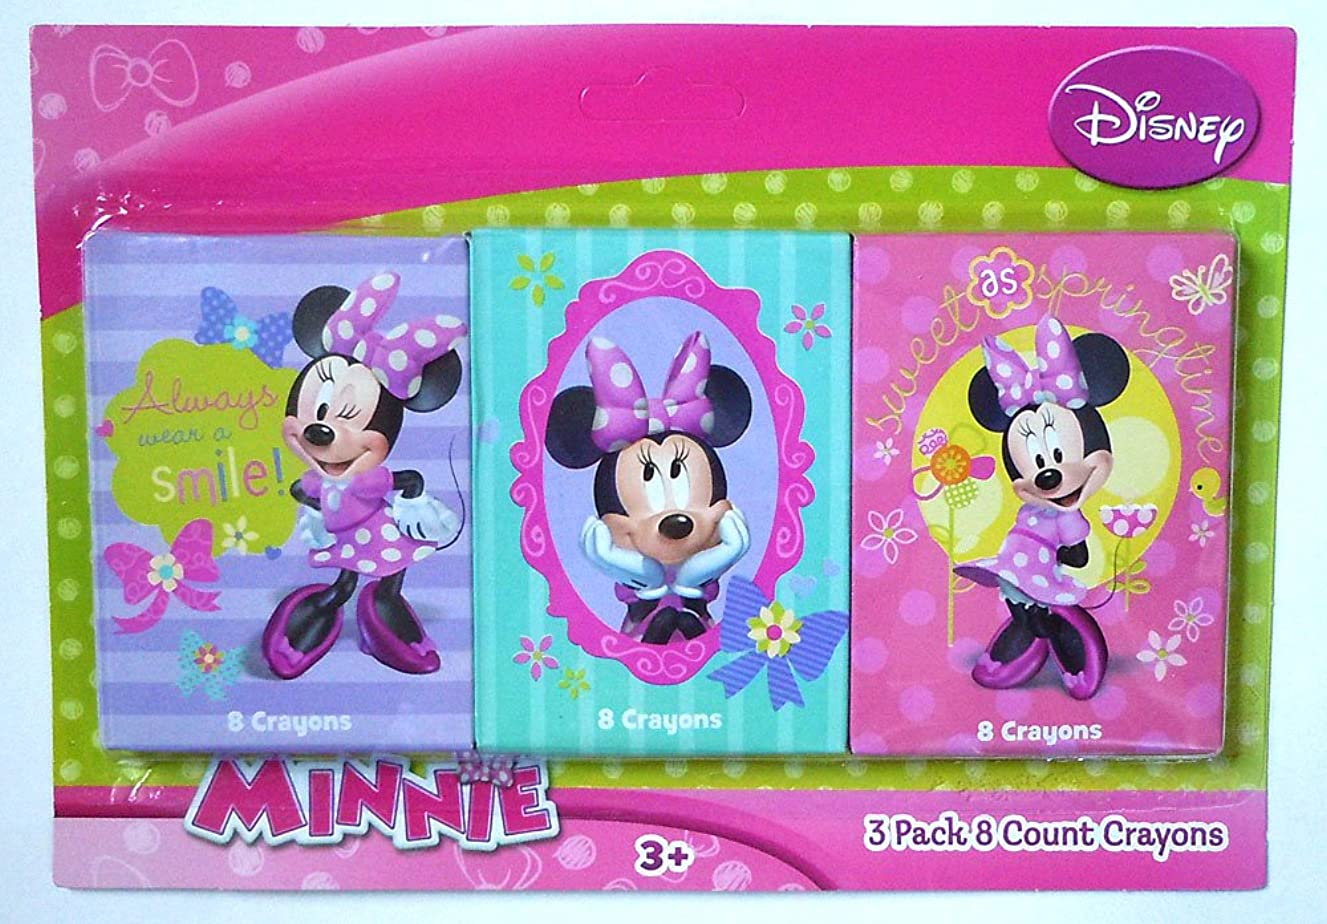 Minnie Mouse Crayons - 3 Packs of 8 Crayons (Minnie Mouse)